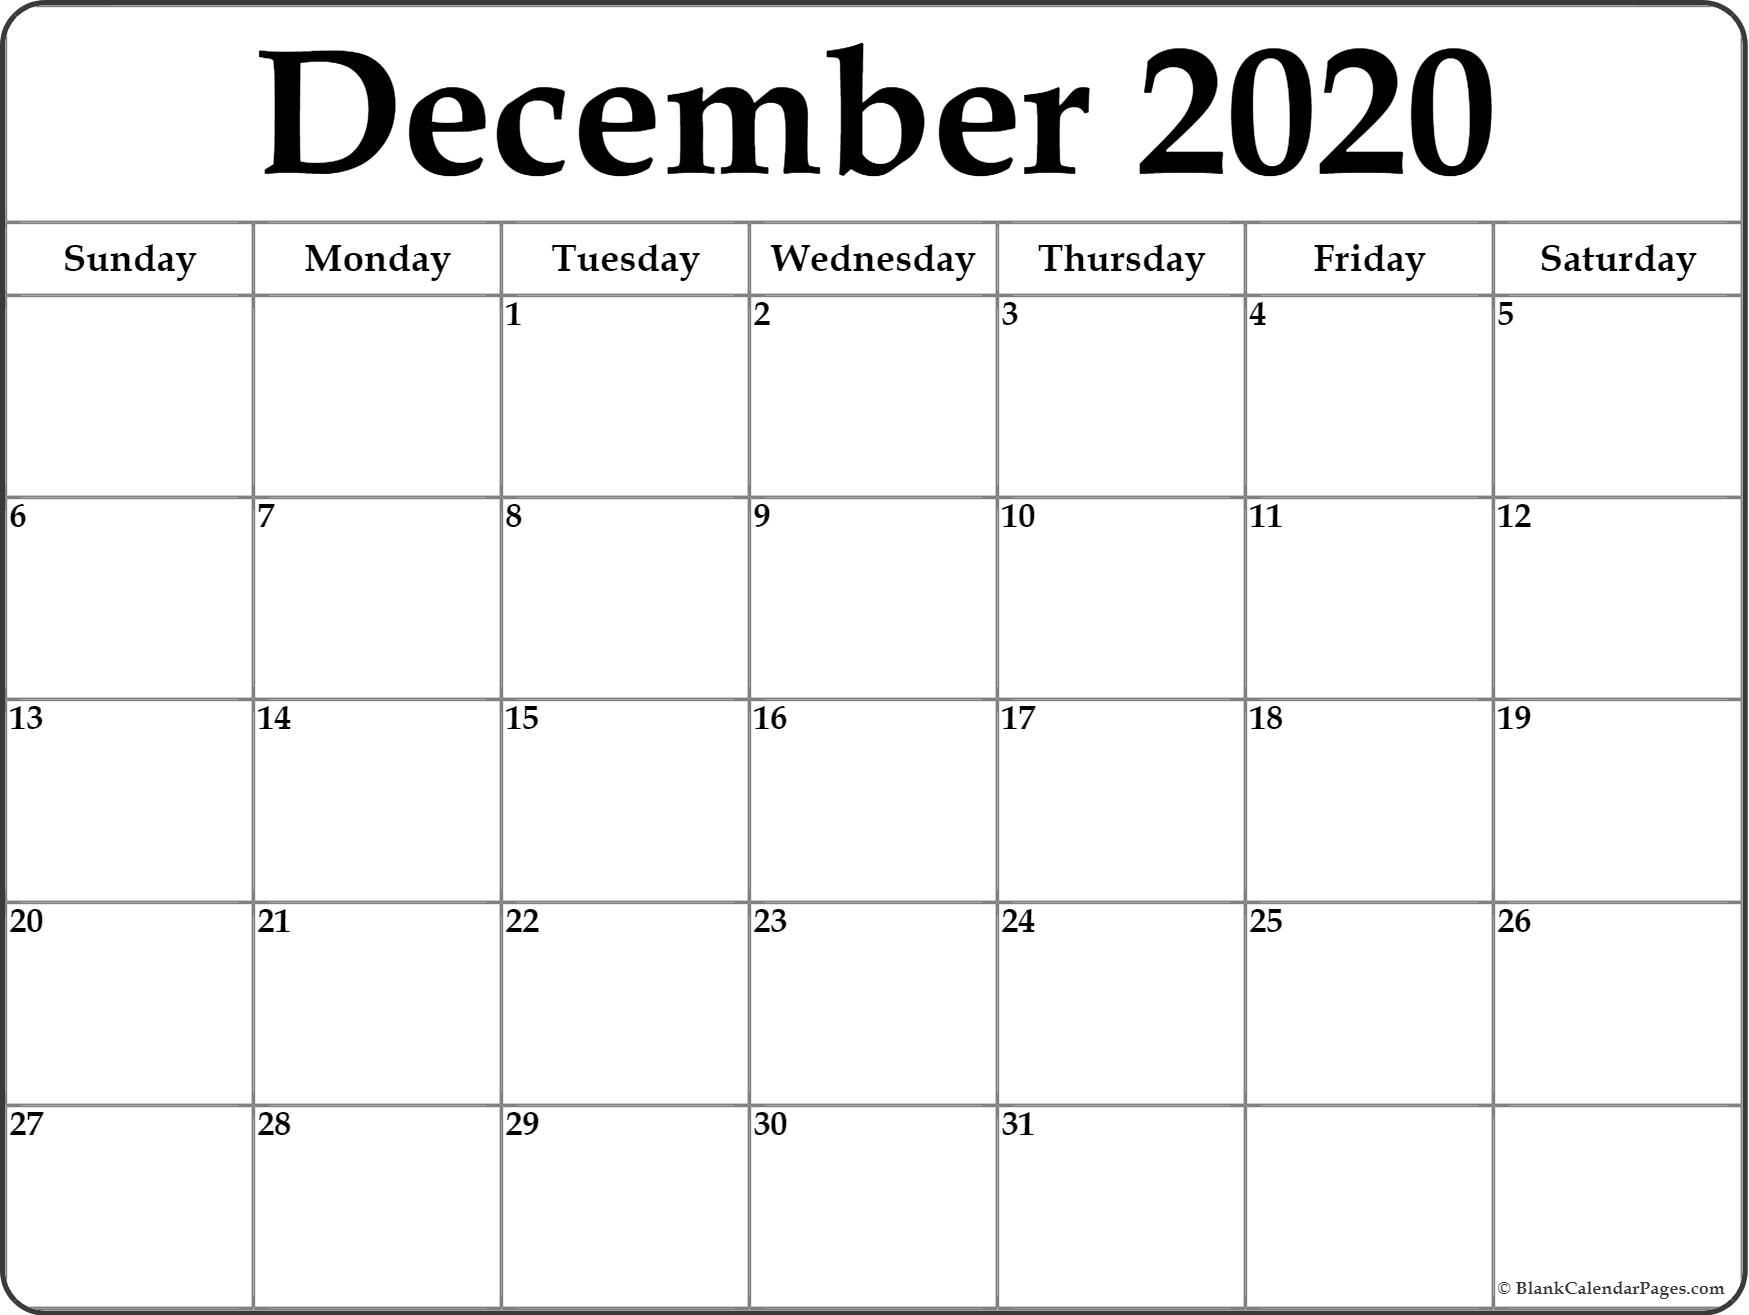 Blank Calendar December 2020  Bolan.horizonconsulting.co regarding Calendar 2020 December